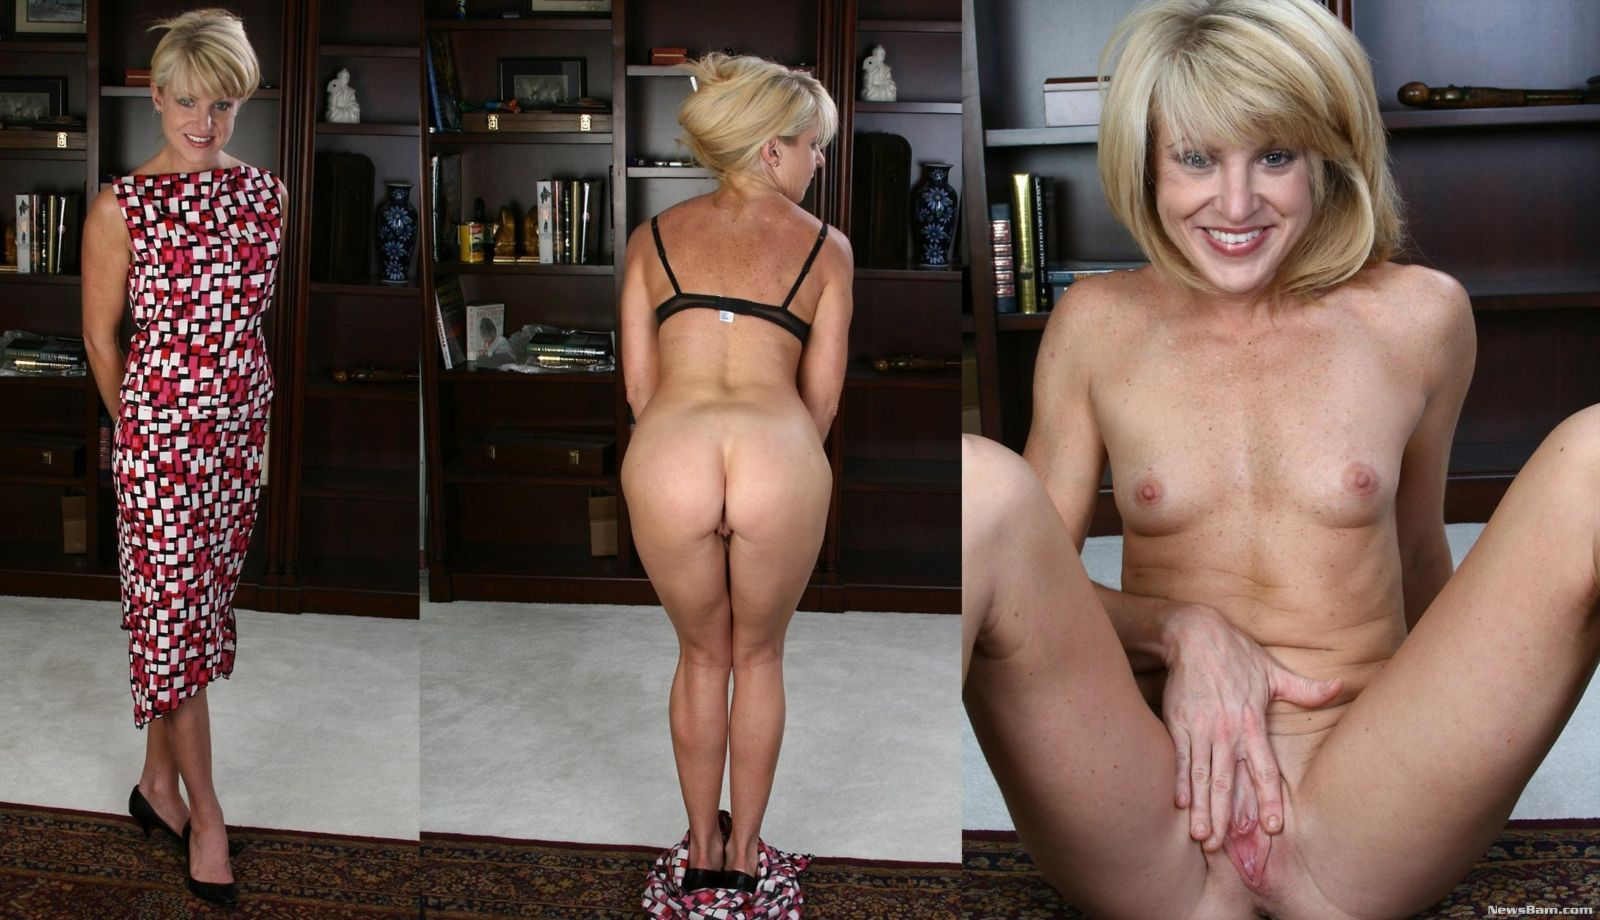 Amateur wife nude soccer moms